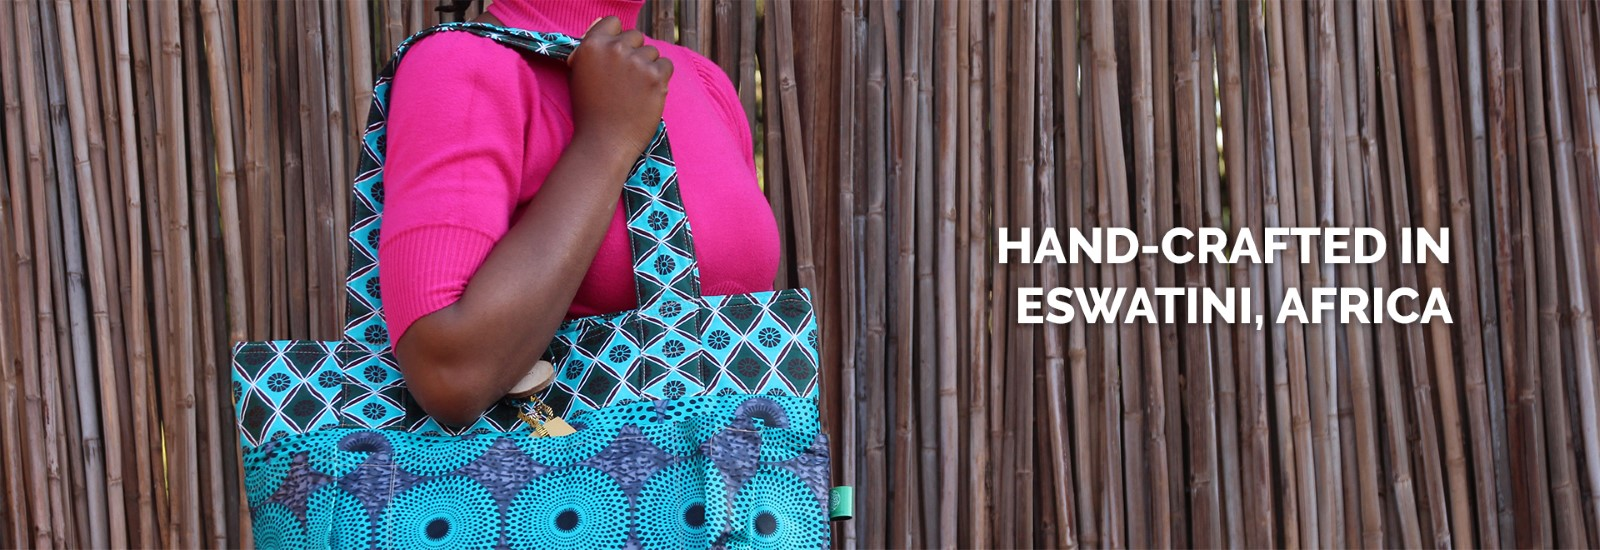 Hand-Crafted in Eswatini, Africa